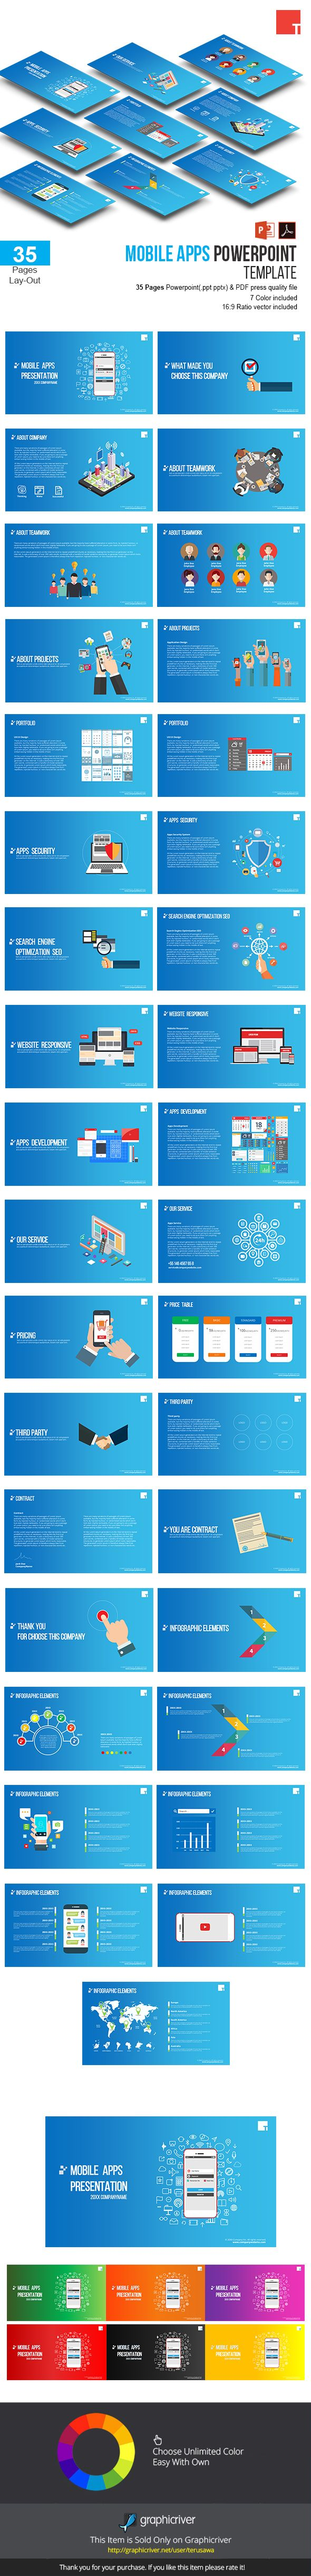 Mobile apps powerpoint template creative powerpoint templates mobile apps powerpoint template creative powerpoint templates toneelgroepblik Images